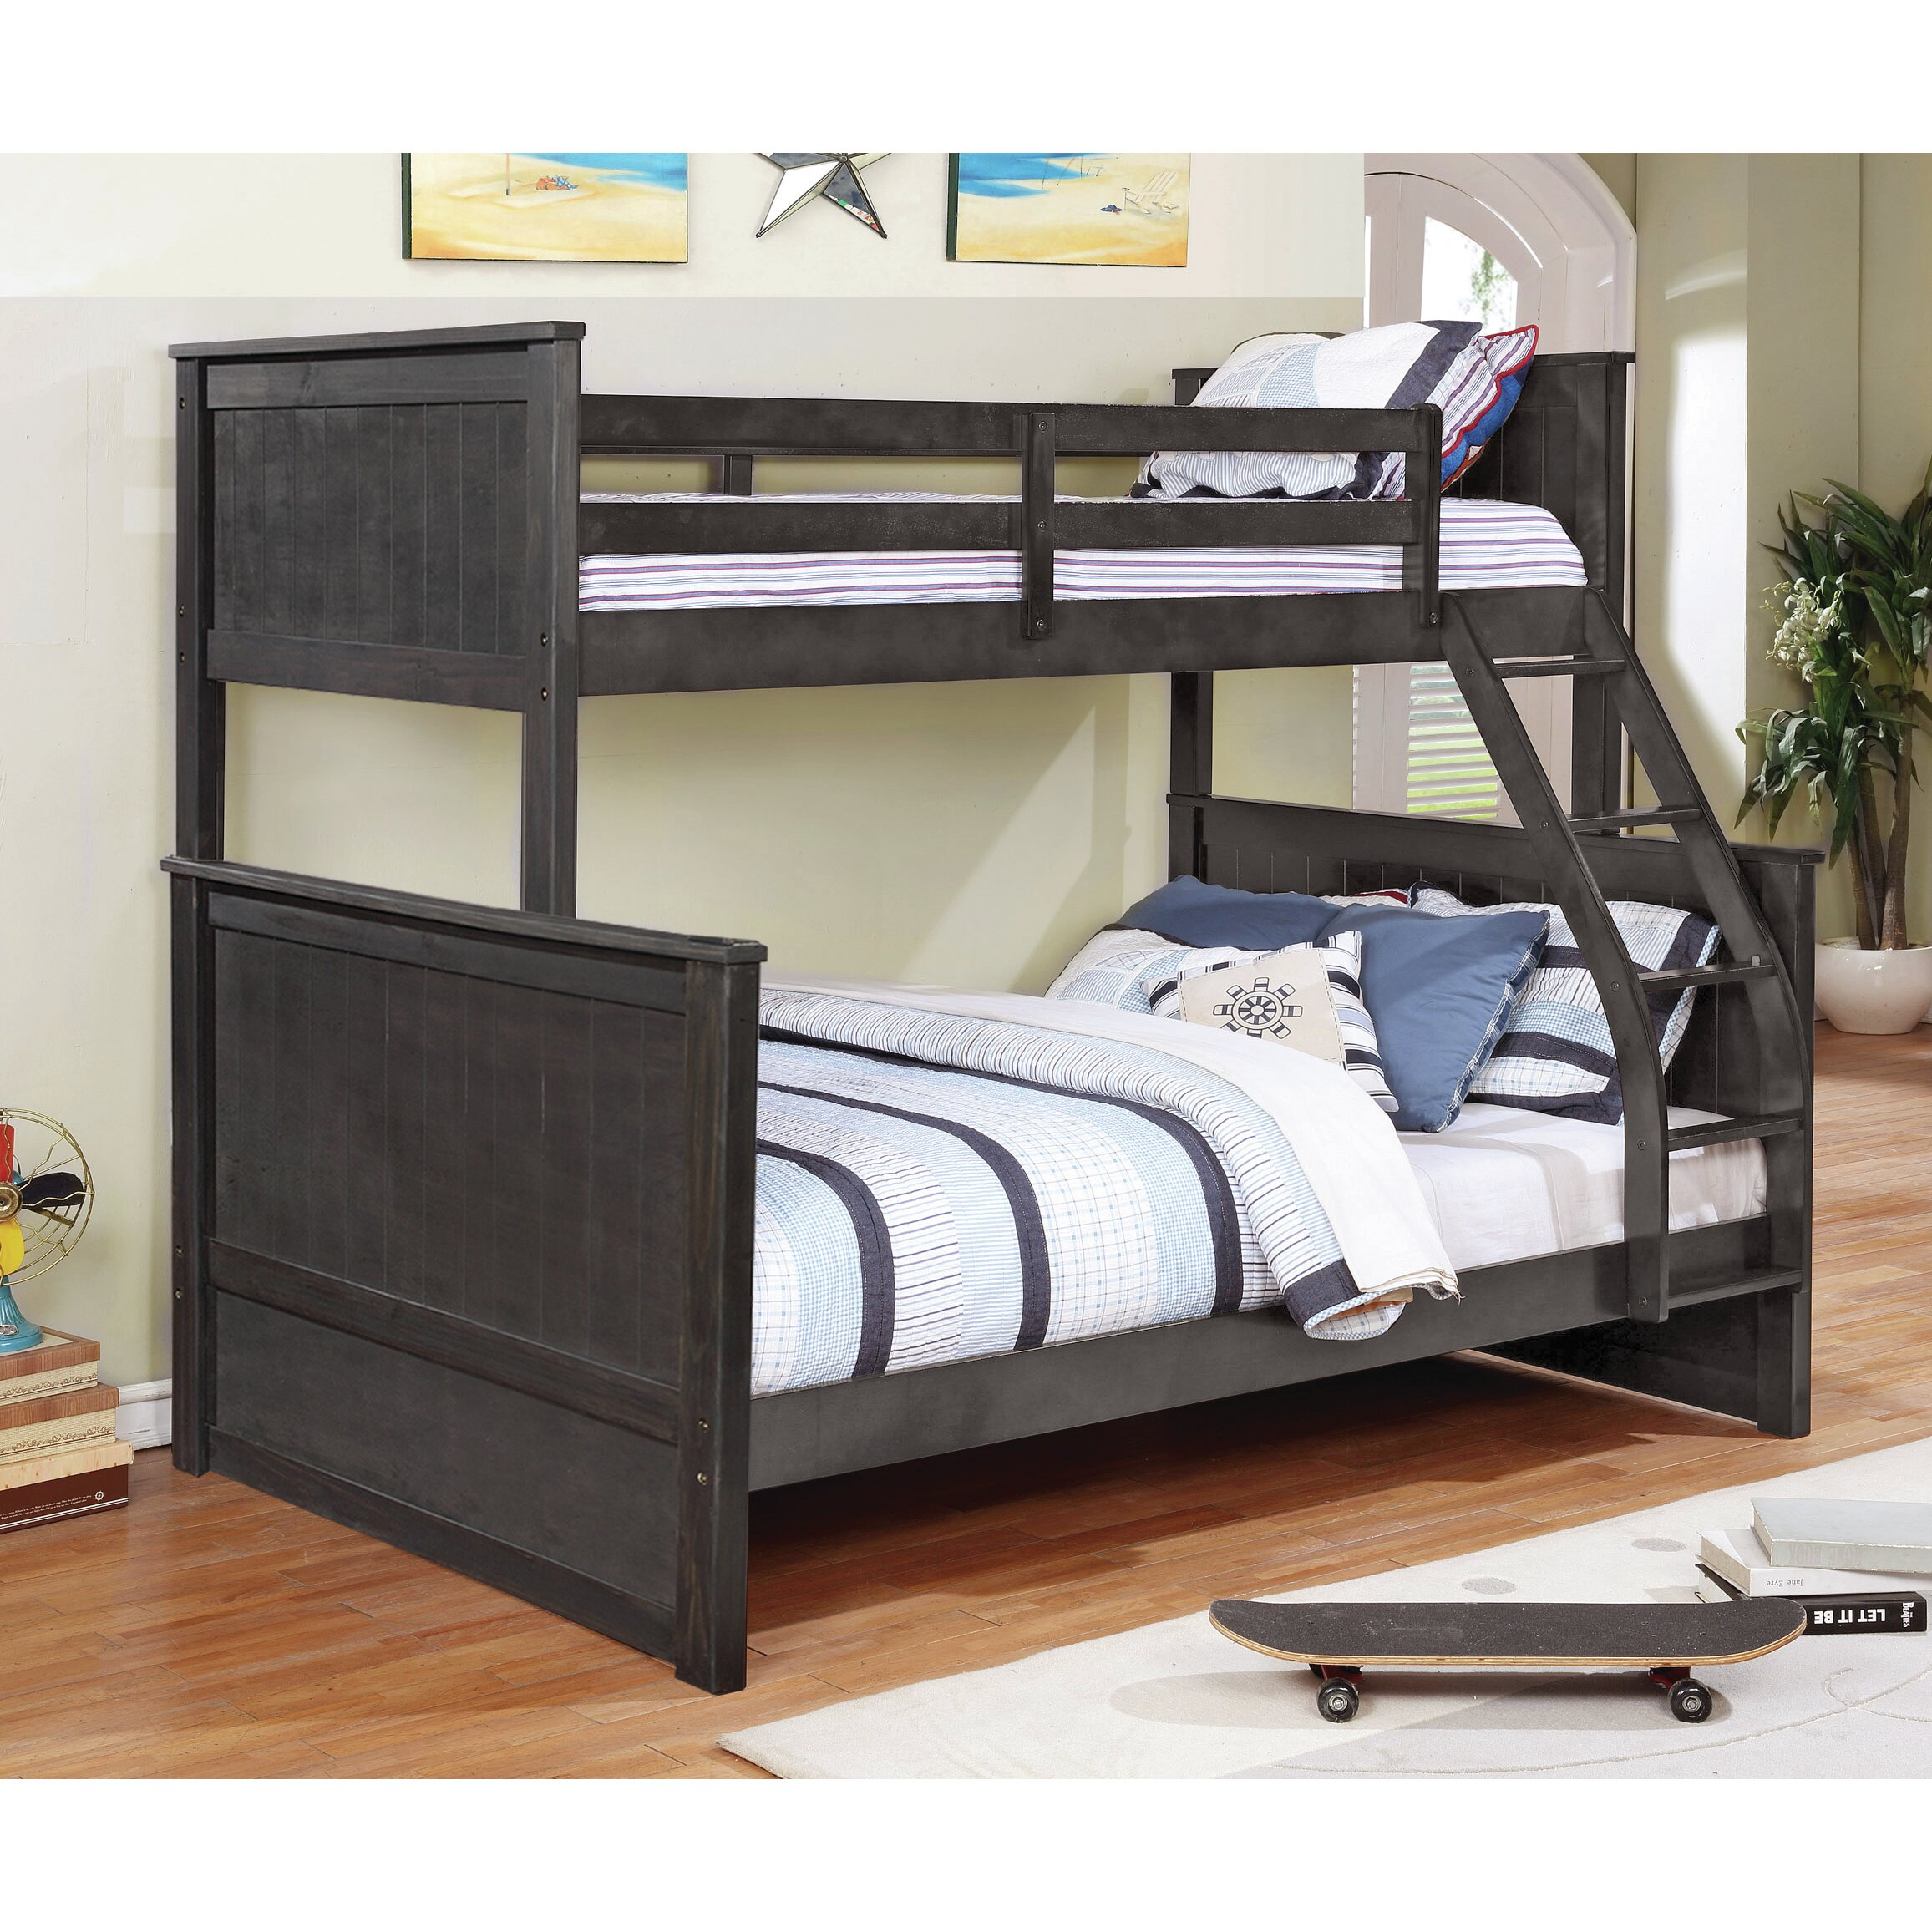 magnolia home hudson twin over full loft bunk bed reviews wayfair. Black Bedroom Furniture Sets. Home Design Ideas